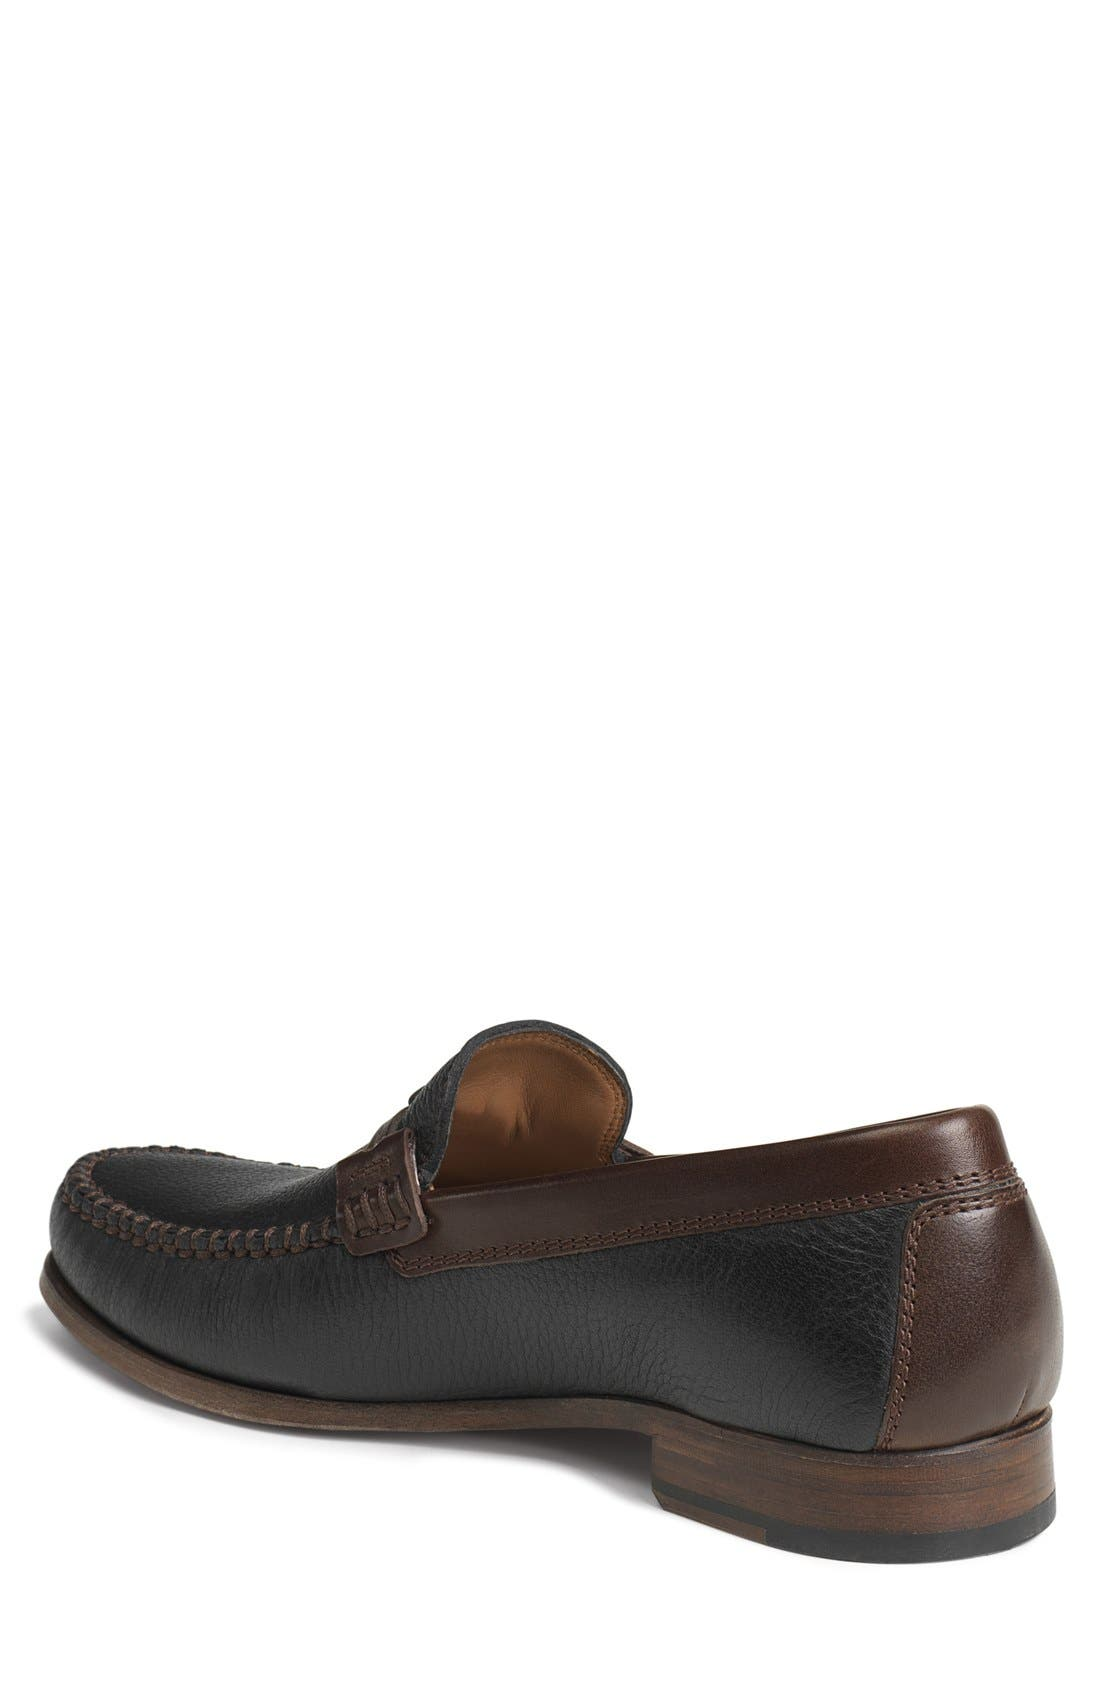 'Sawyer' Loafer,                             Alternate thumbnail 2, color,                             Black